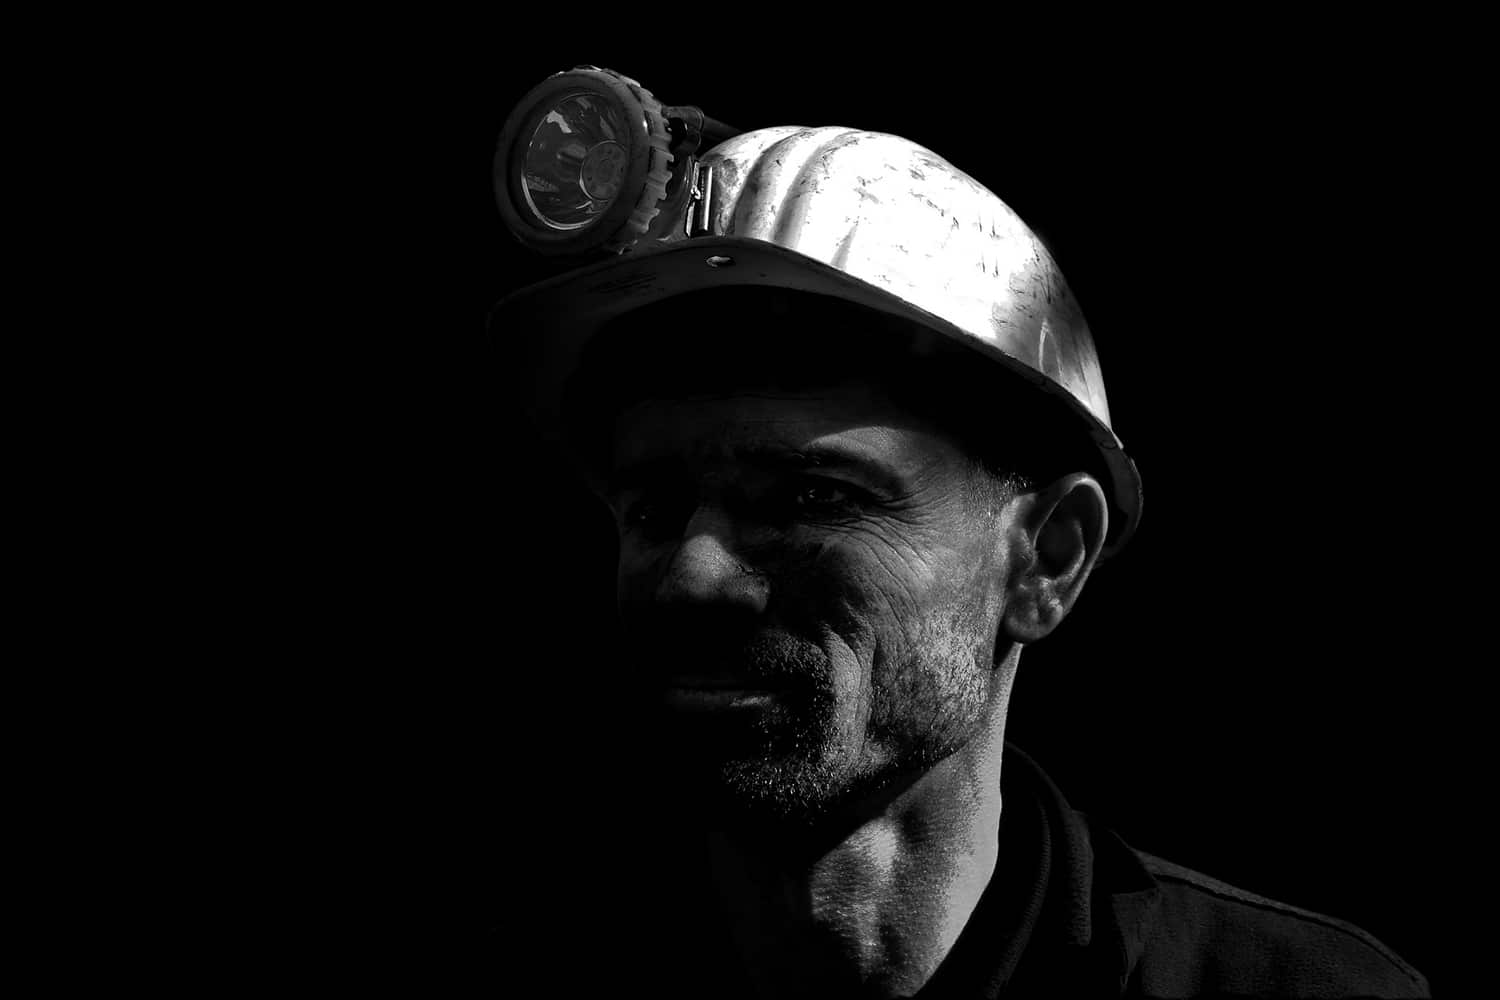 A miner in the dark in a black-and-white photo.